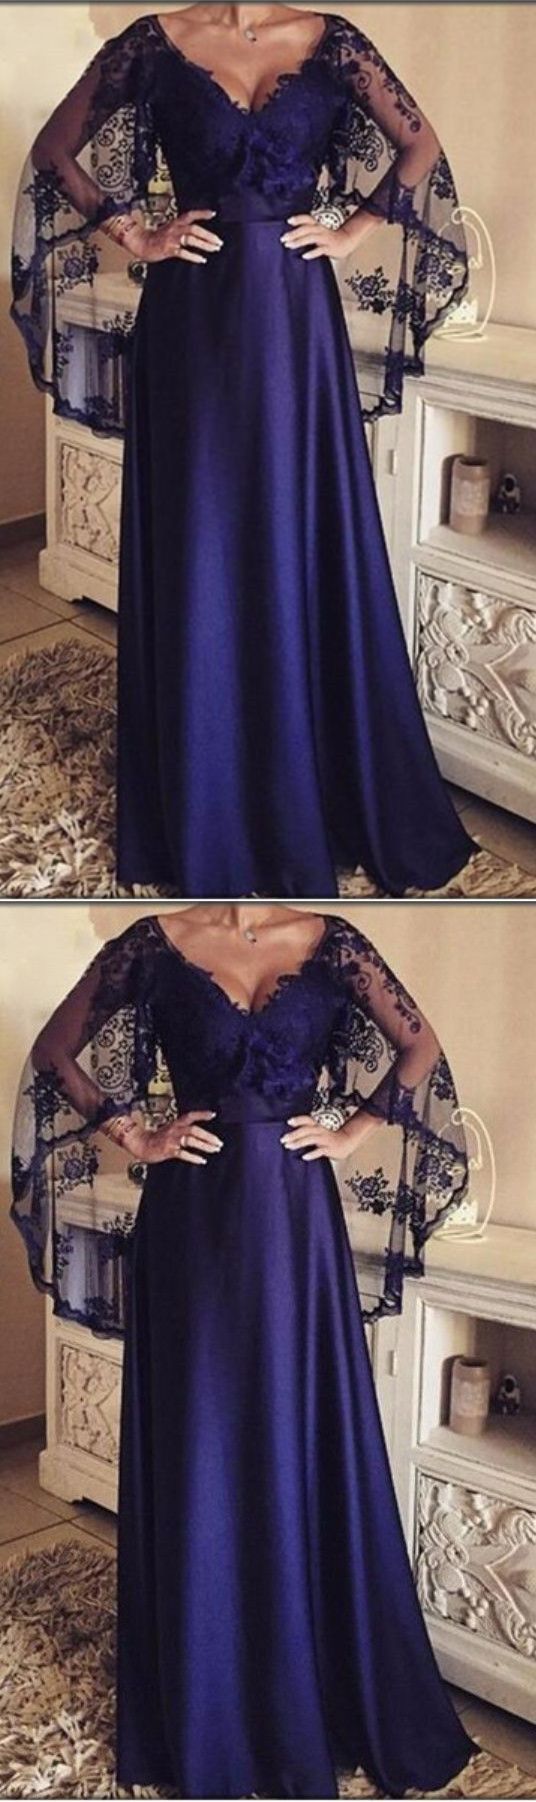 Sexy elegant evening dressvneck long evening dresses with lace